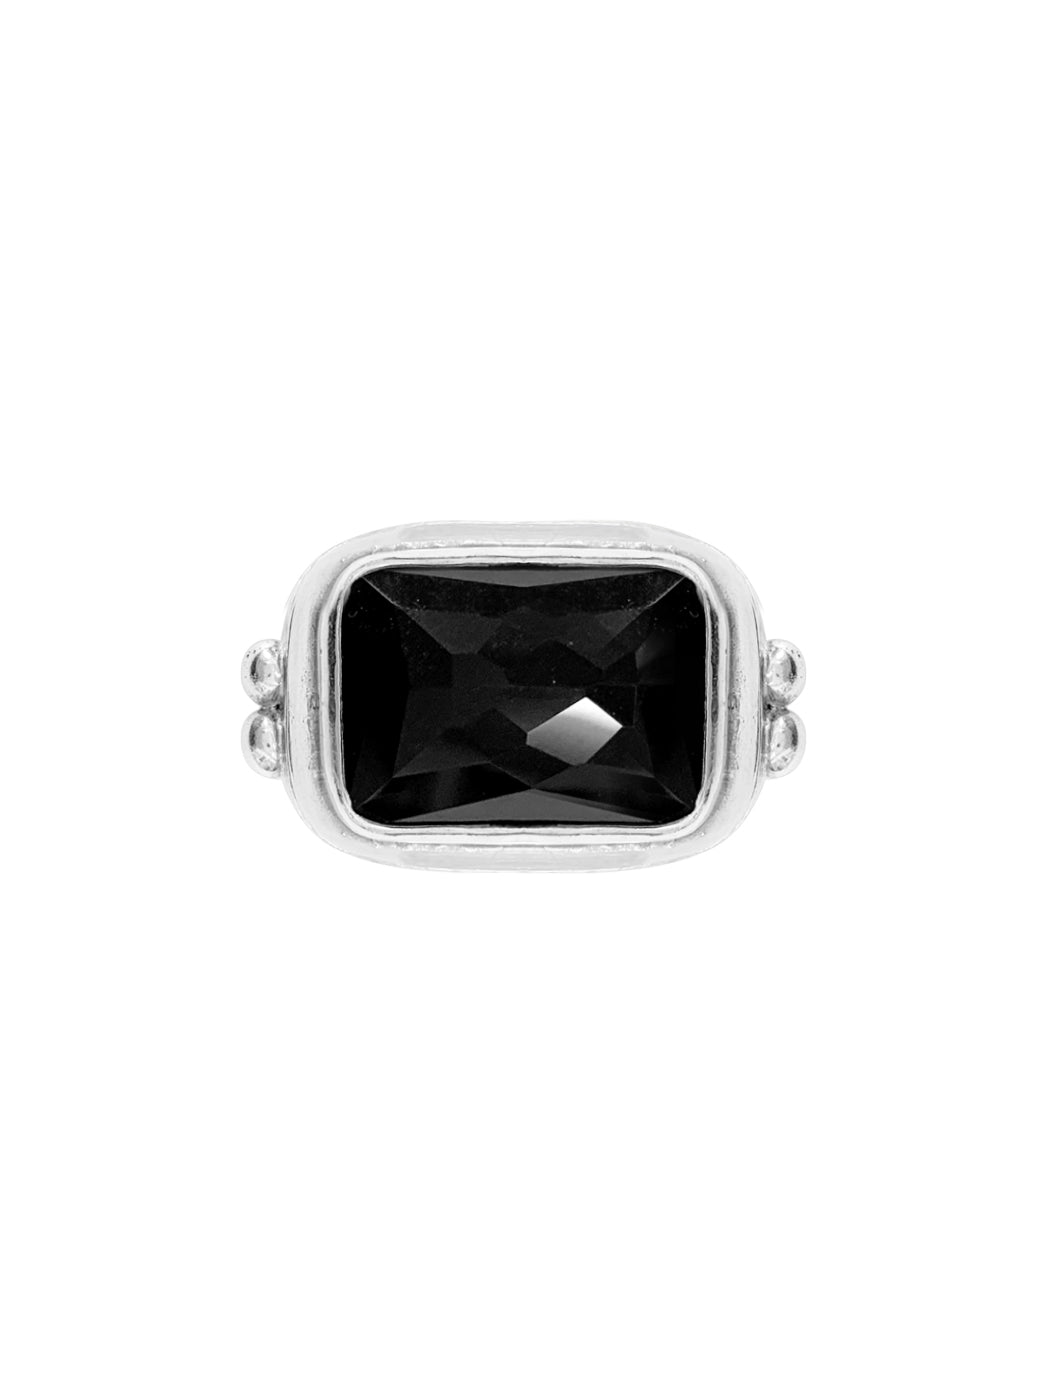 Fiorina Jewellery Rectangle Cocktail Ring Black Onyx Top View